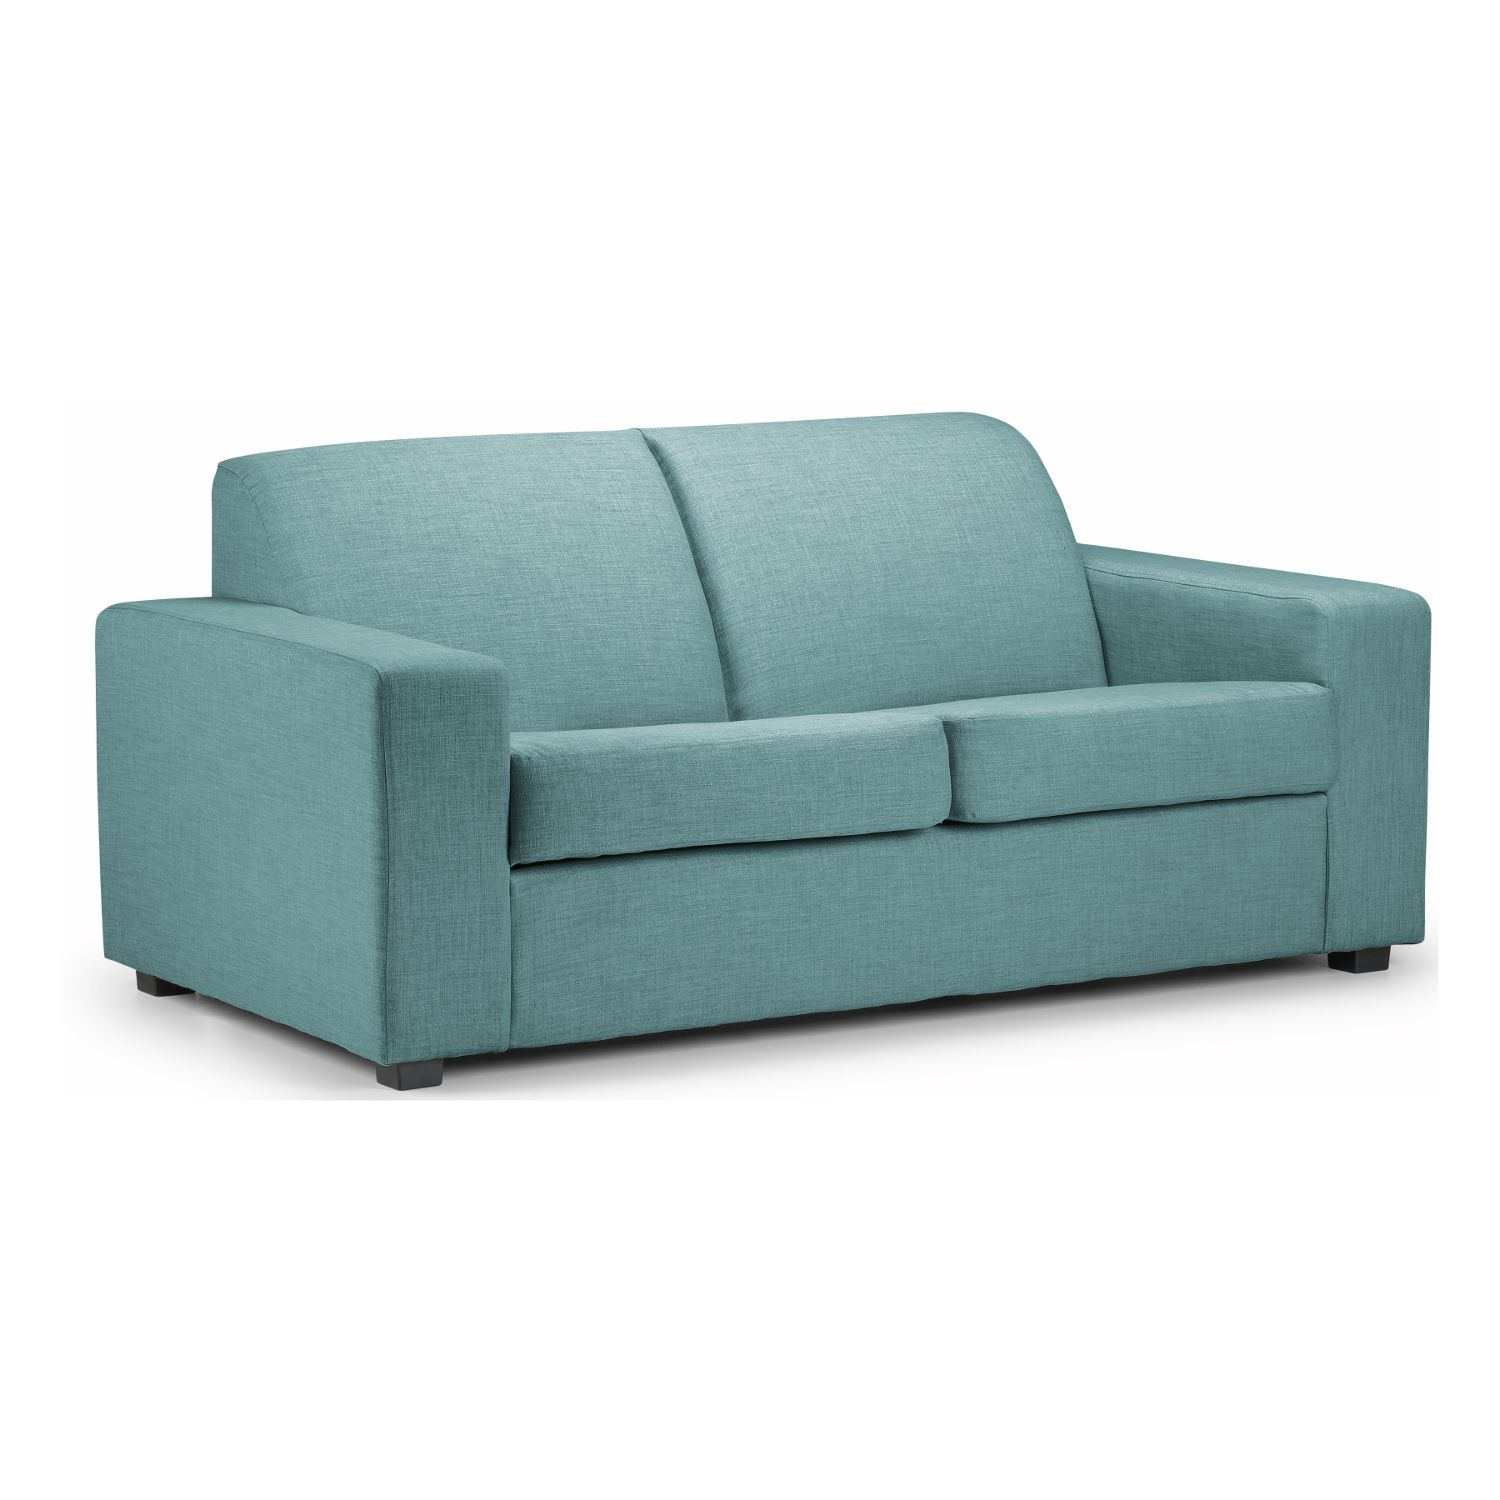 sofas delivered next day vogue faux leather sofa bed in white delivery gradschoolfairs